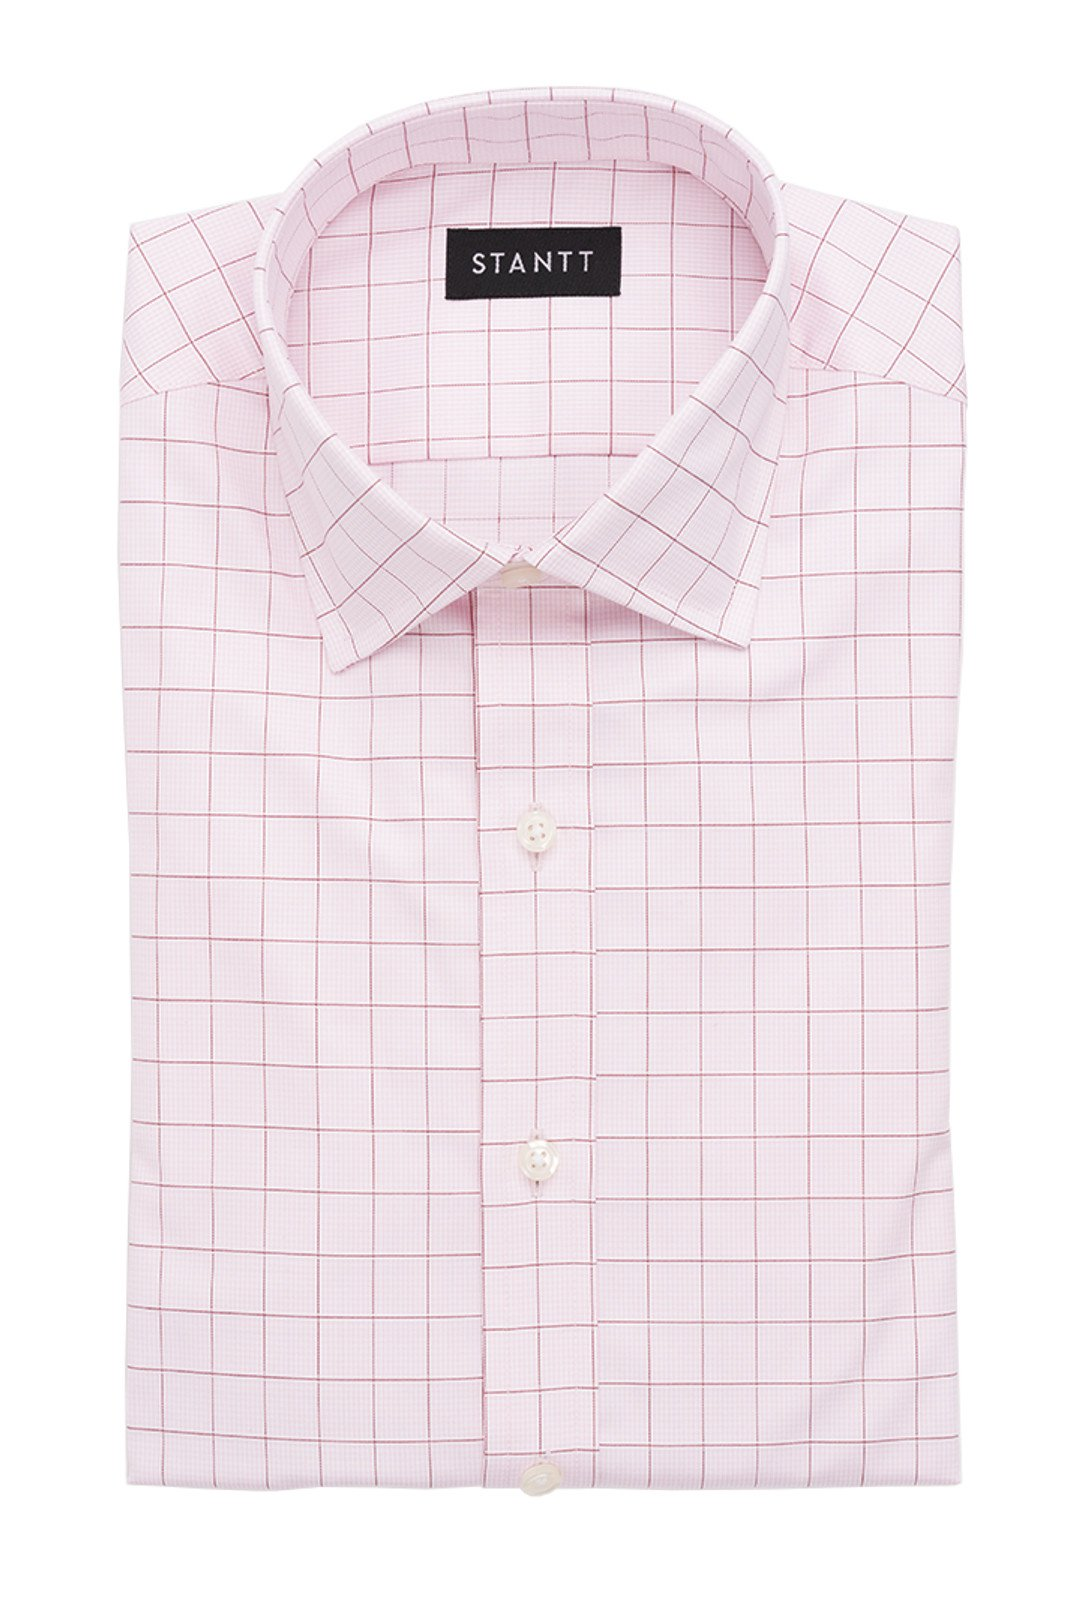 Light Pink Prince of Wales Check: Modified-Spread Collar, Barrel Cuff